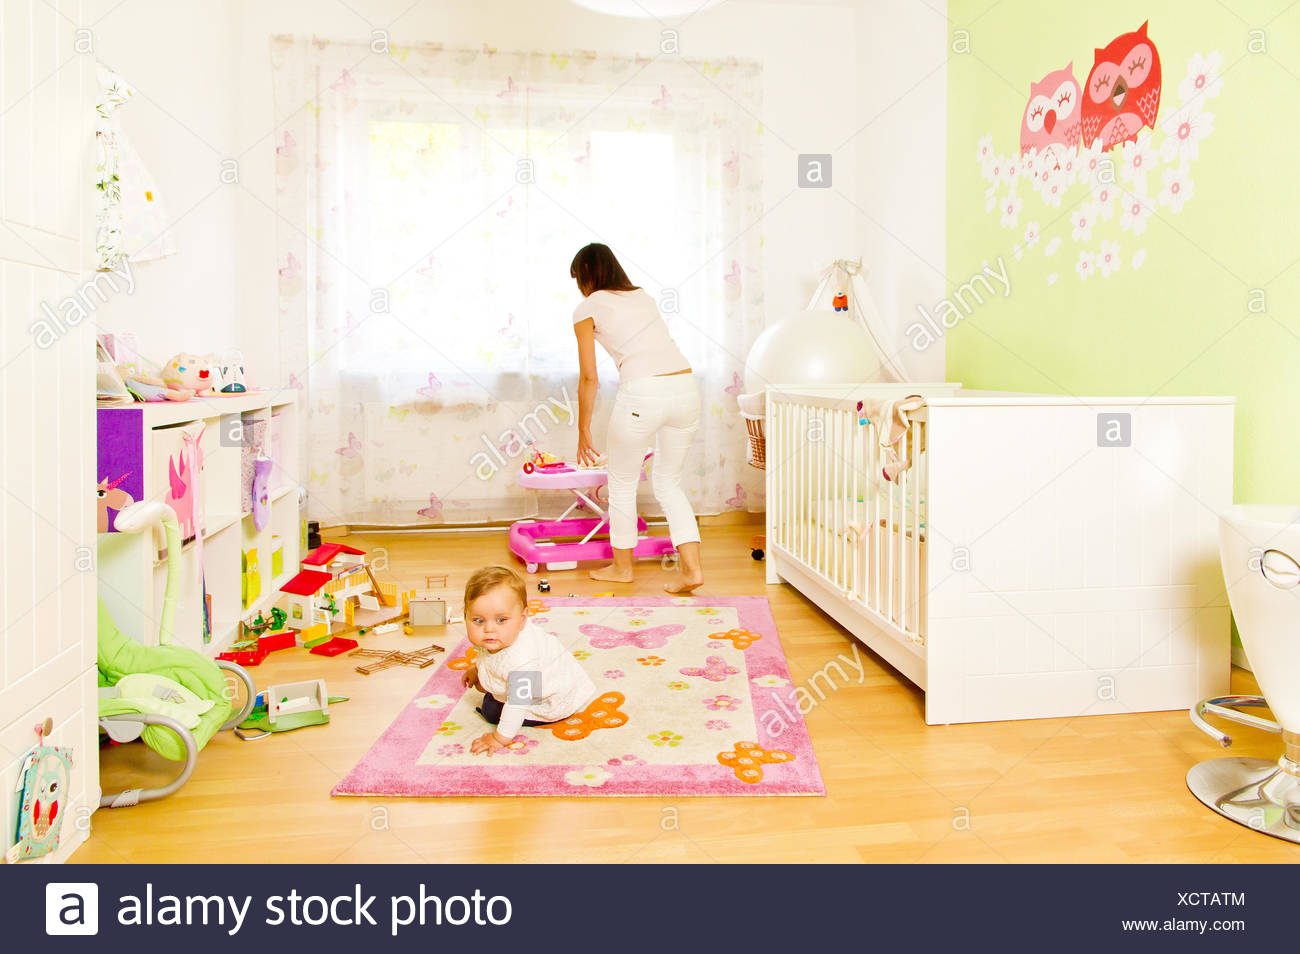 Young mother with baby in childrens room Stock Photo